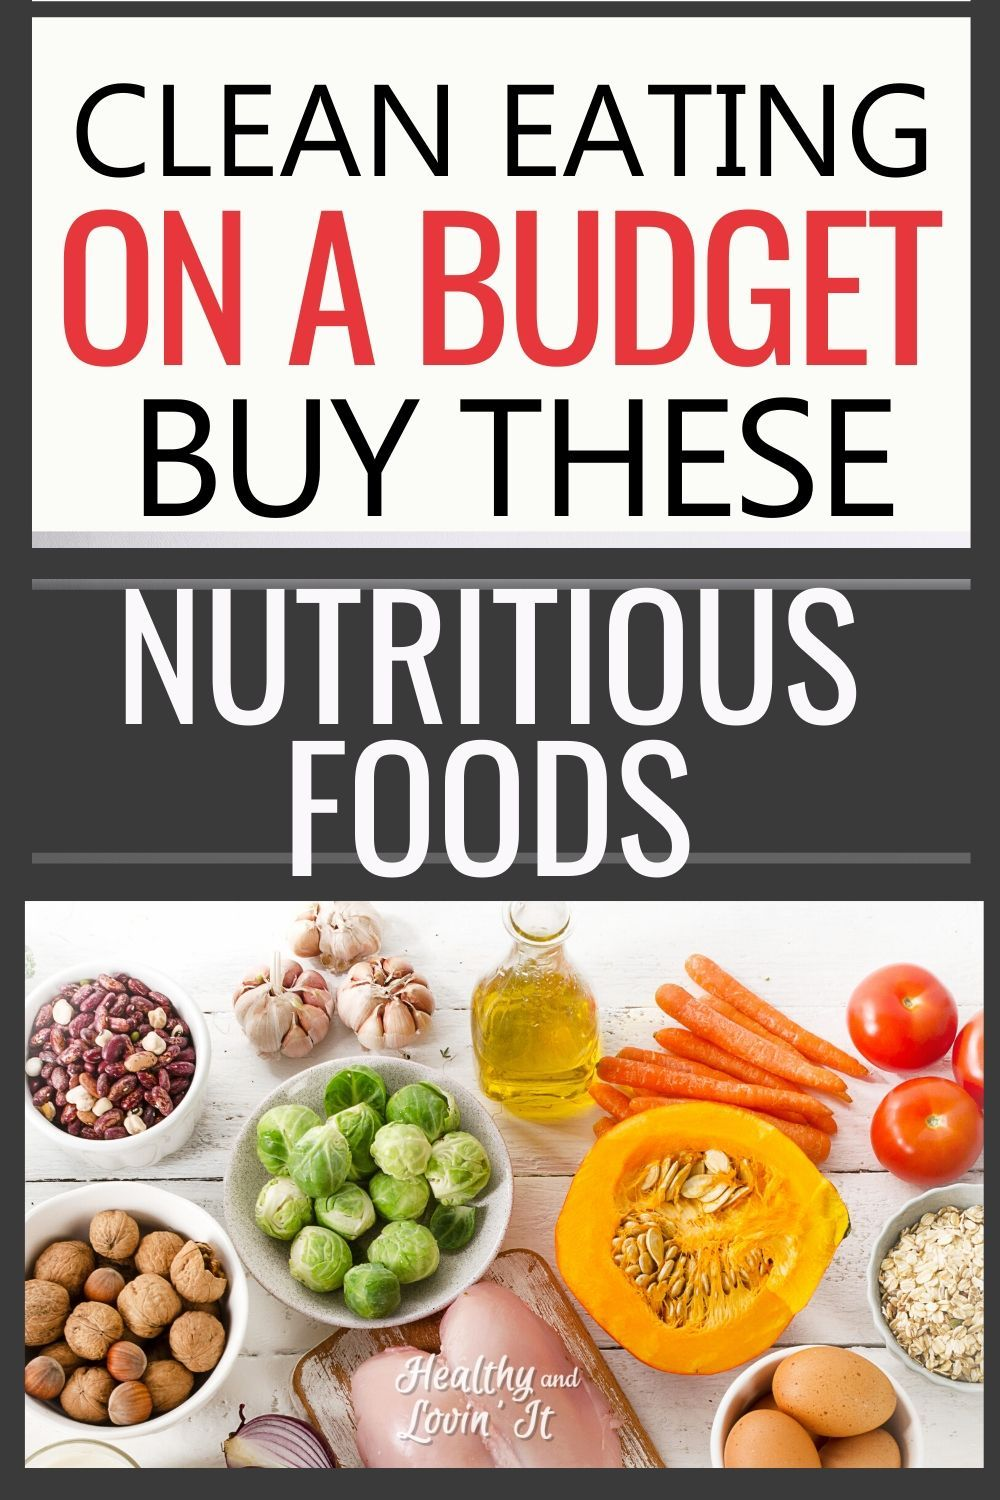 8 Tips For Clean Eating On A Budget The Most Nutritious Foods For Cheap Most Nutritious Foods Nutritious Meals Healthy Groceries